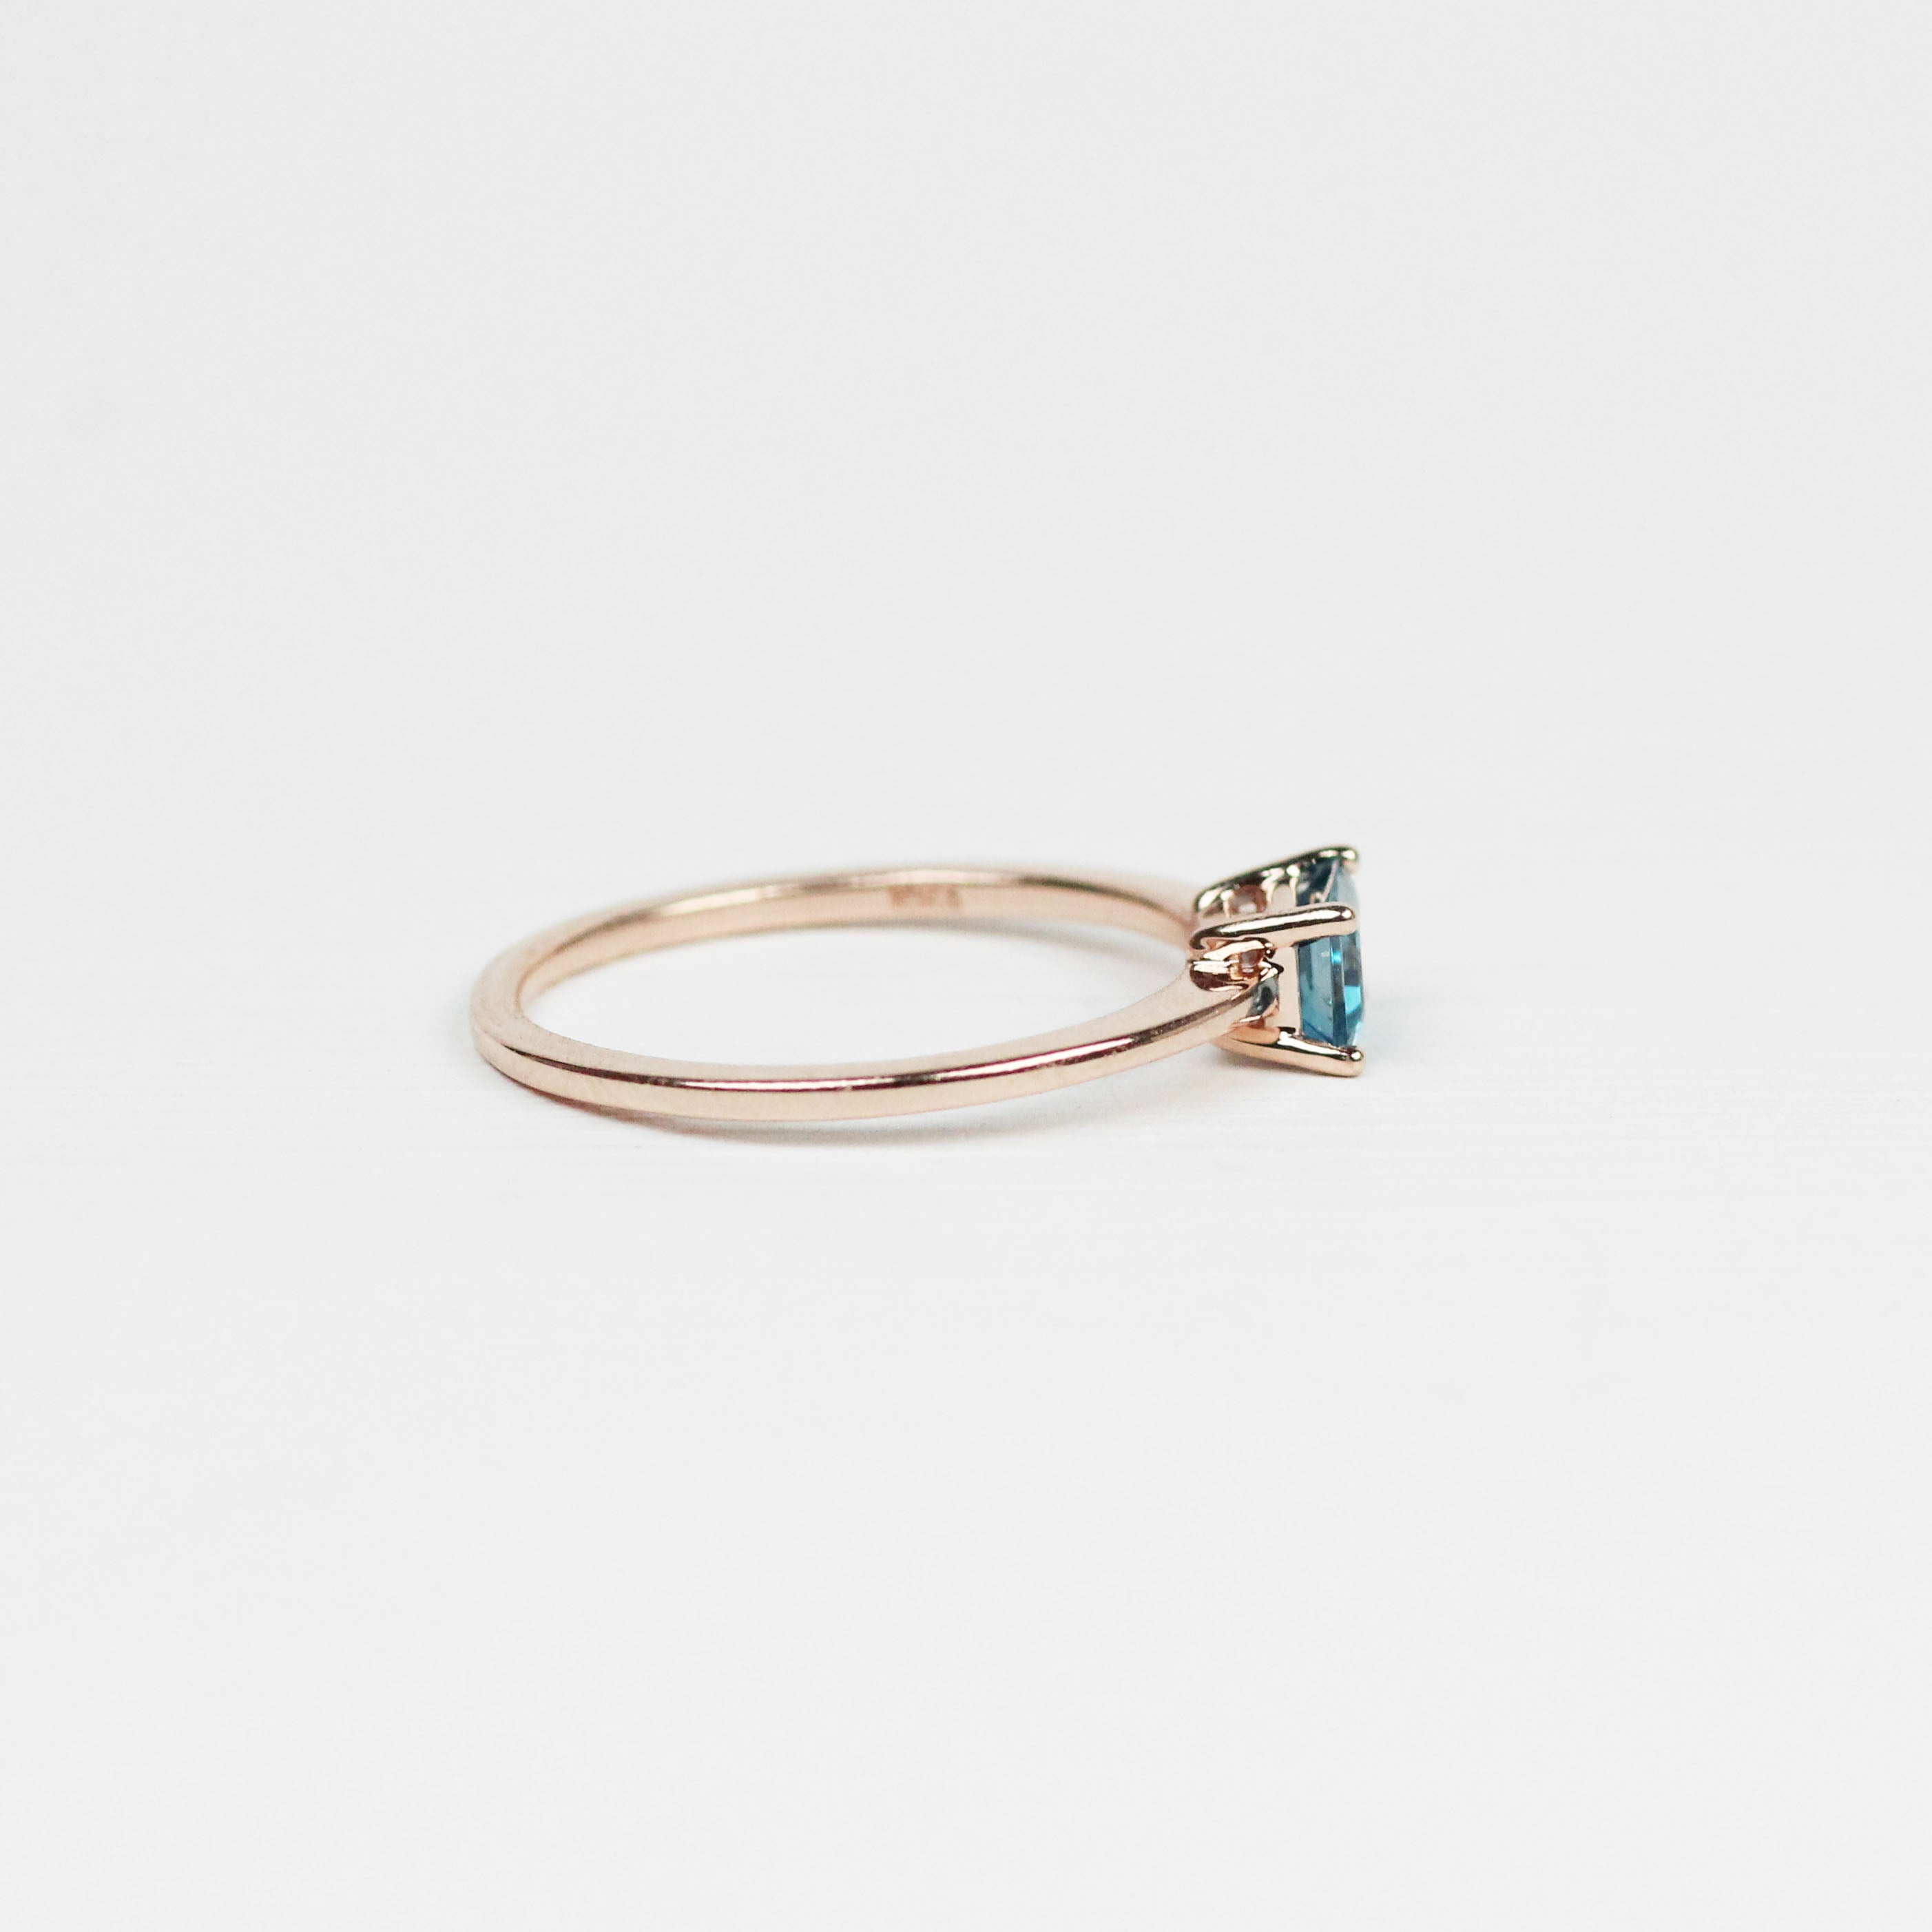 Ruthie Ring with London Blue Topaz - Your choice of metal - Custom - Celestial Diamonds ® by Midwinter Co.